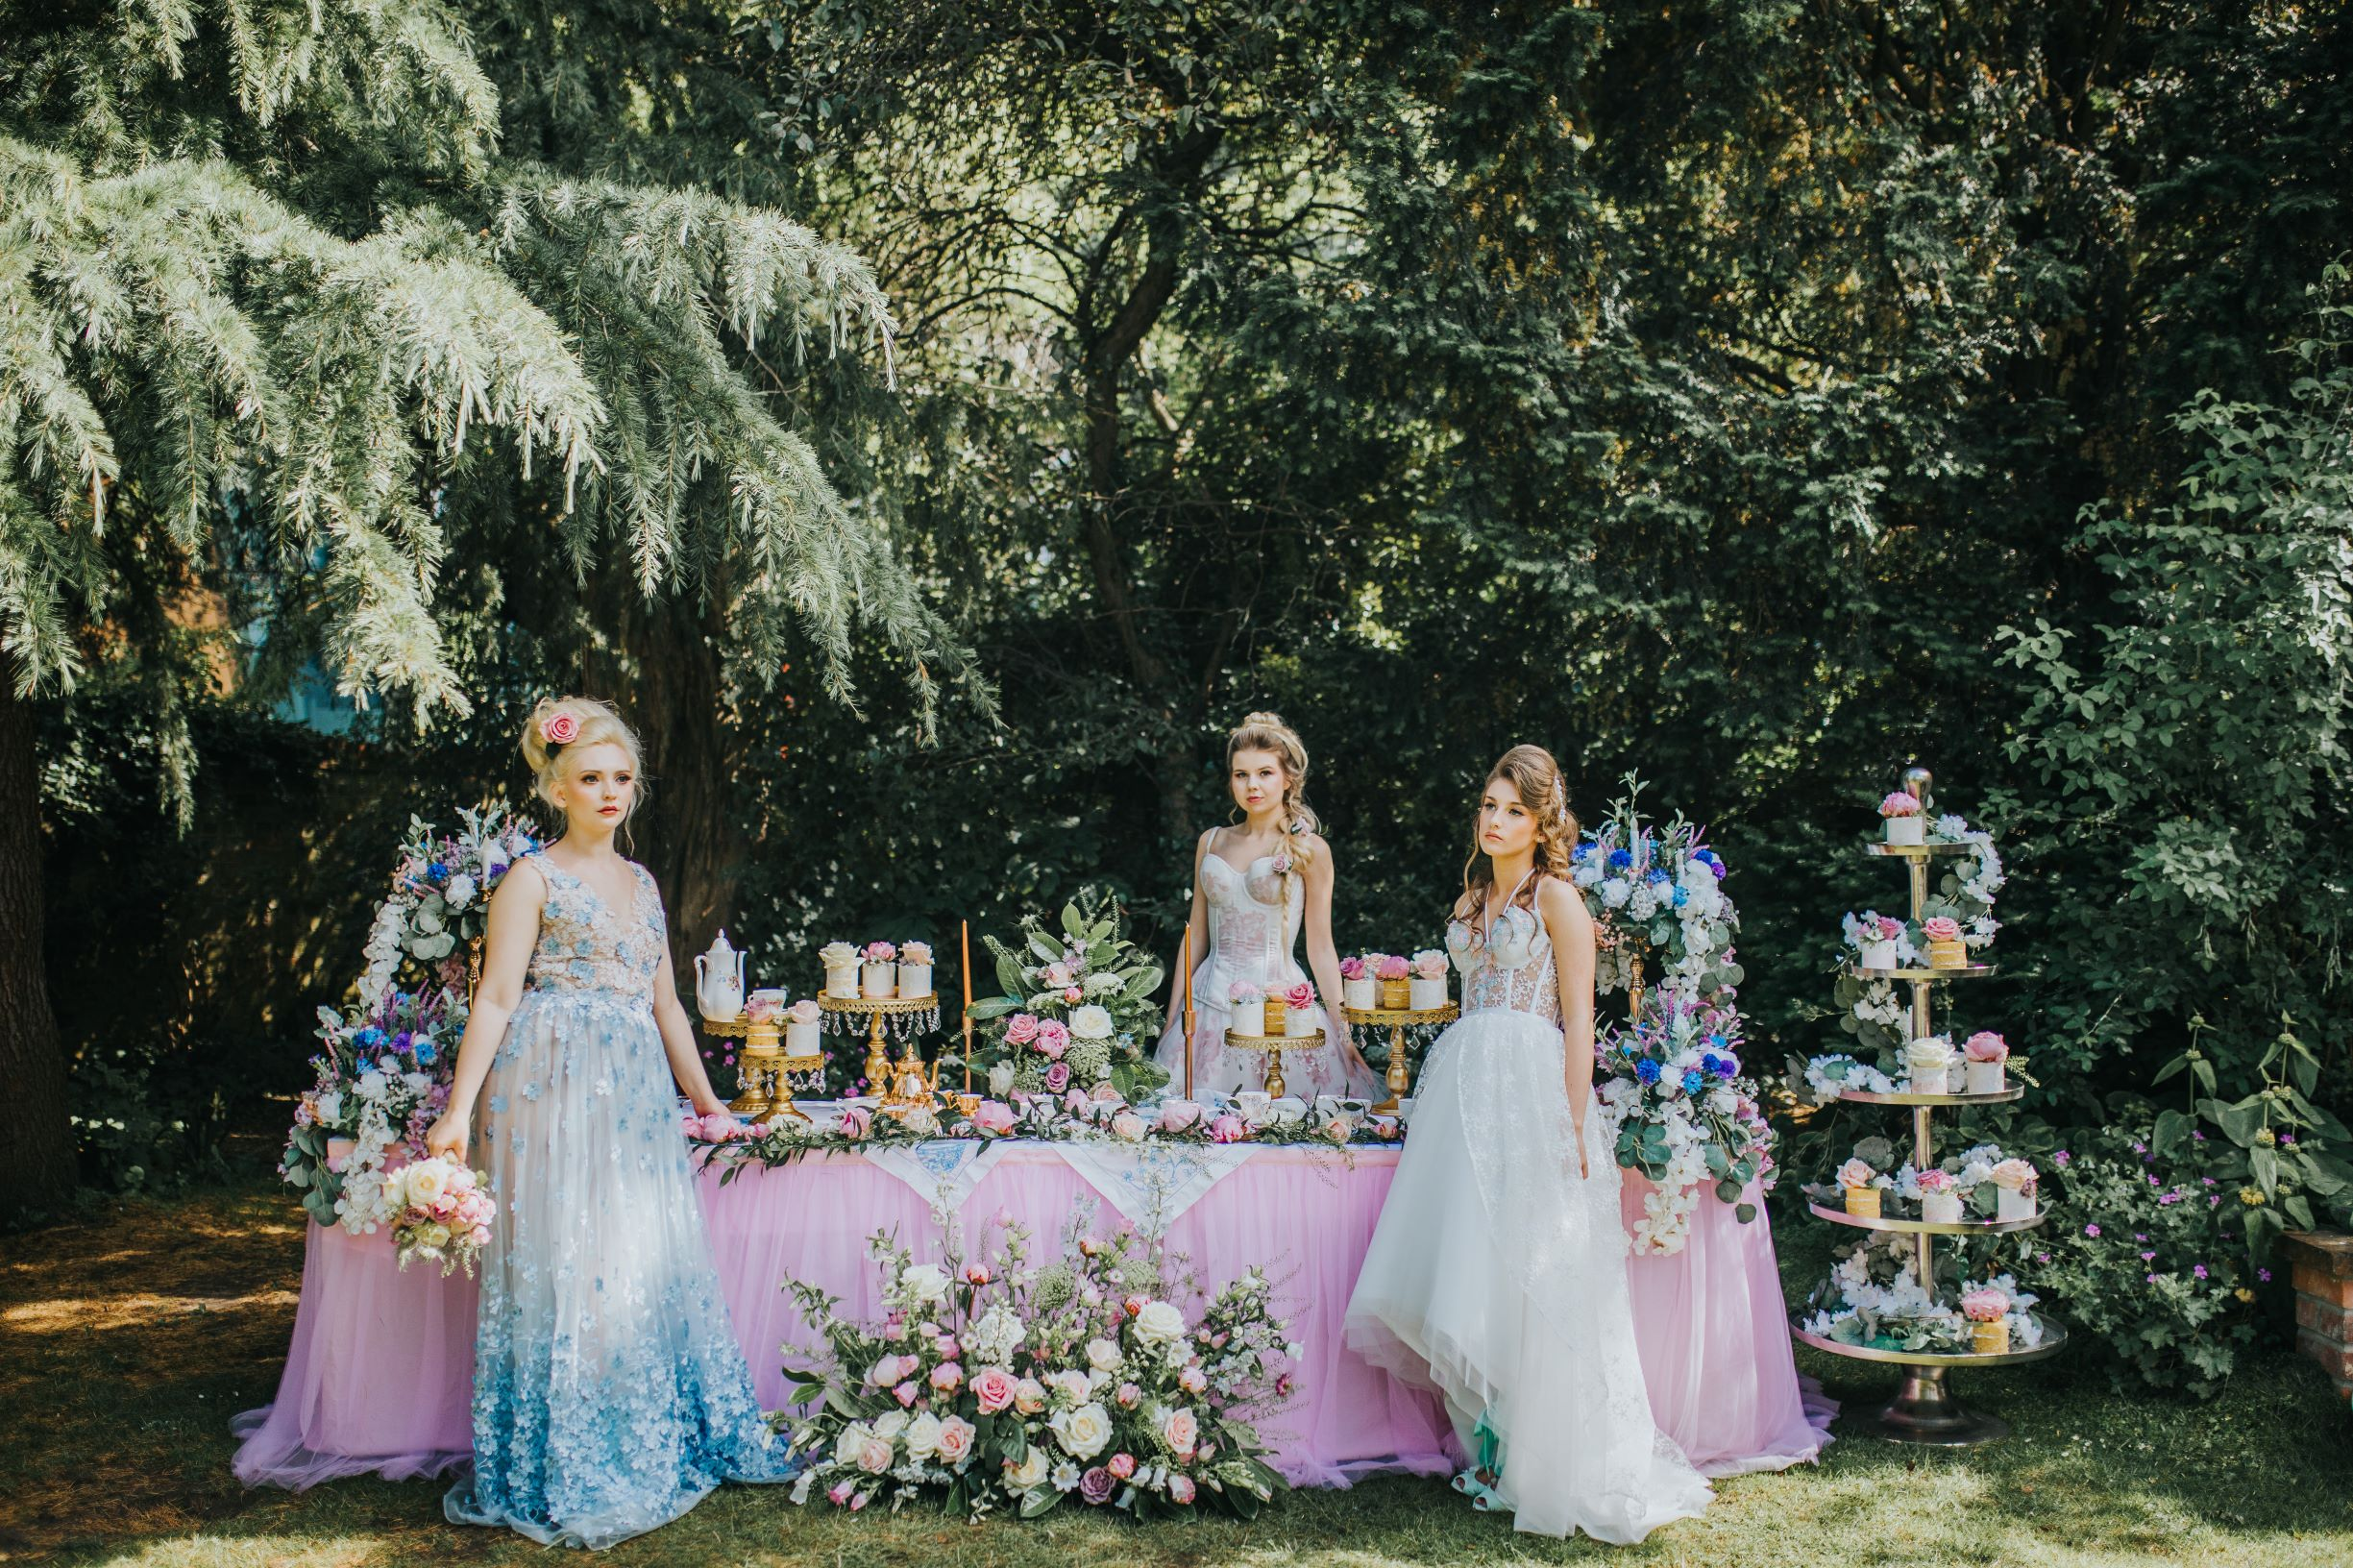 Whimsical wedding- coloured wedding dress- Laura Beresford Photography- unconventional wedding- alternative wedding- tea party wedding- unique wedding dress- alternative bridalwear- quirky wedding cakes